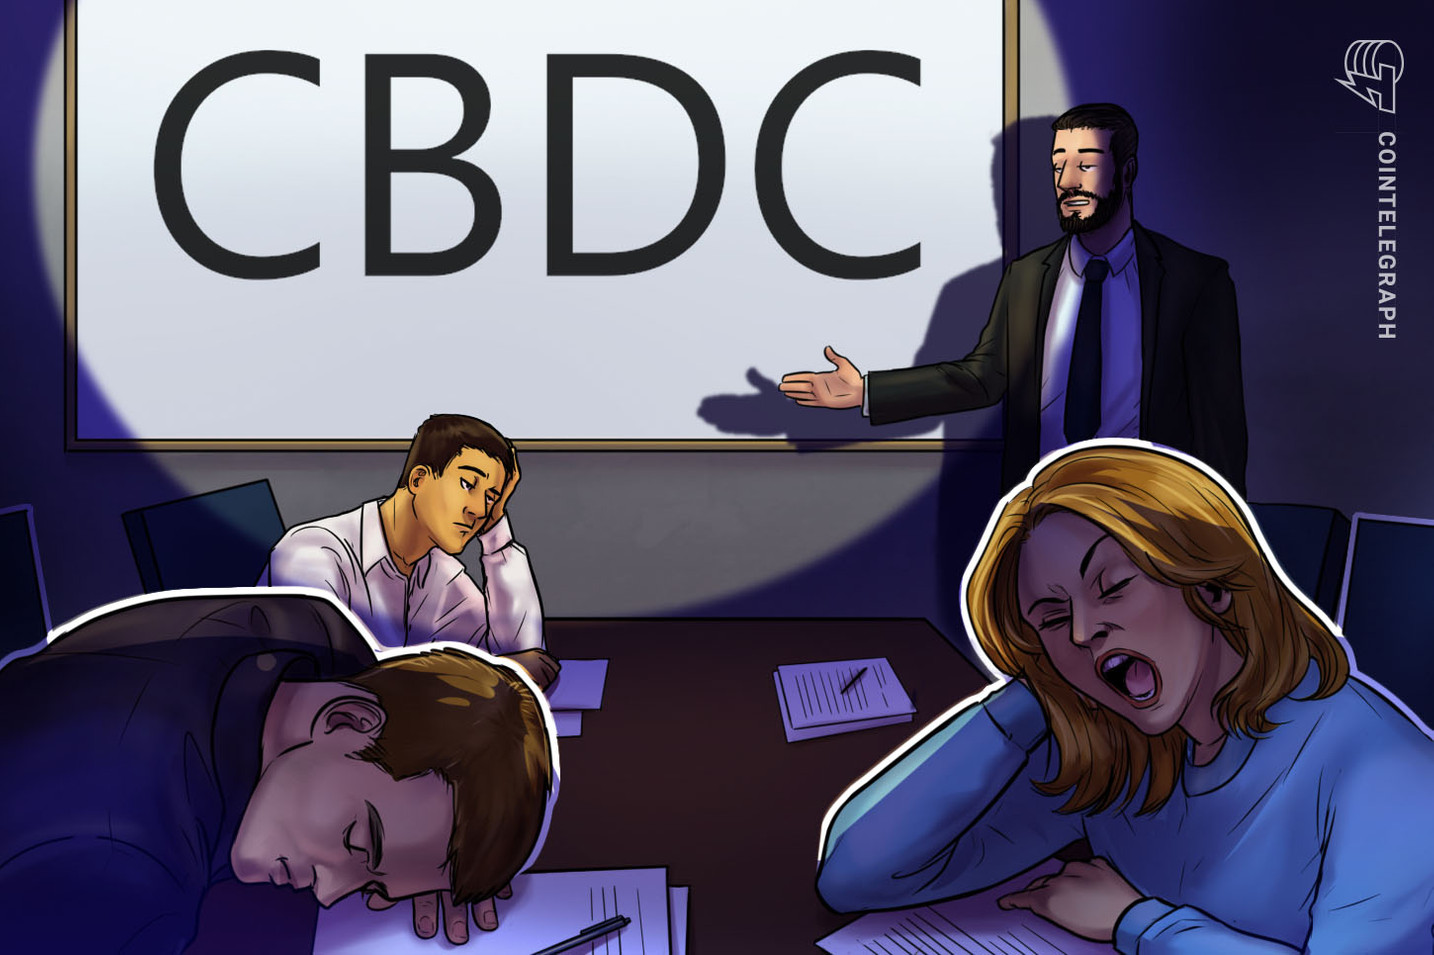 Not All Central Banks Have an Interest in CBDCs